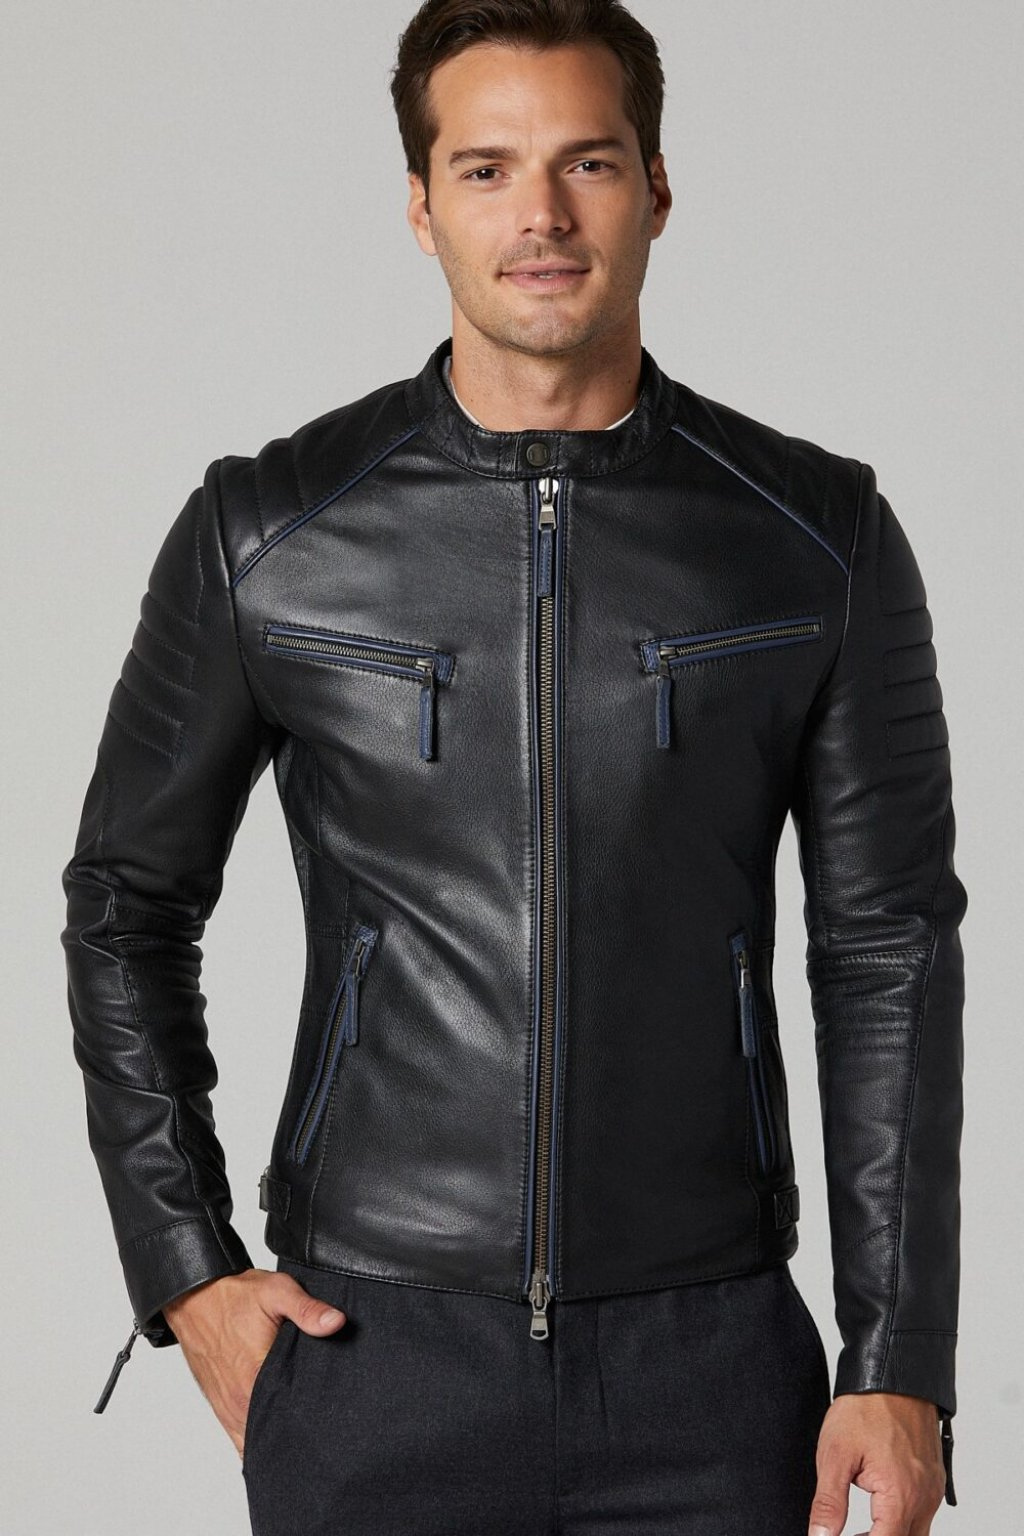 Dazzling Black MENS Sport Leather Jacket